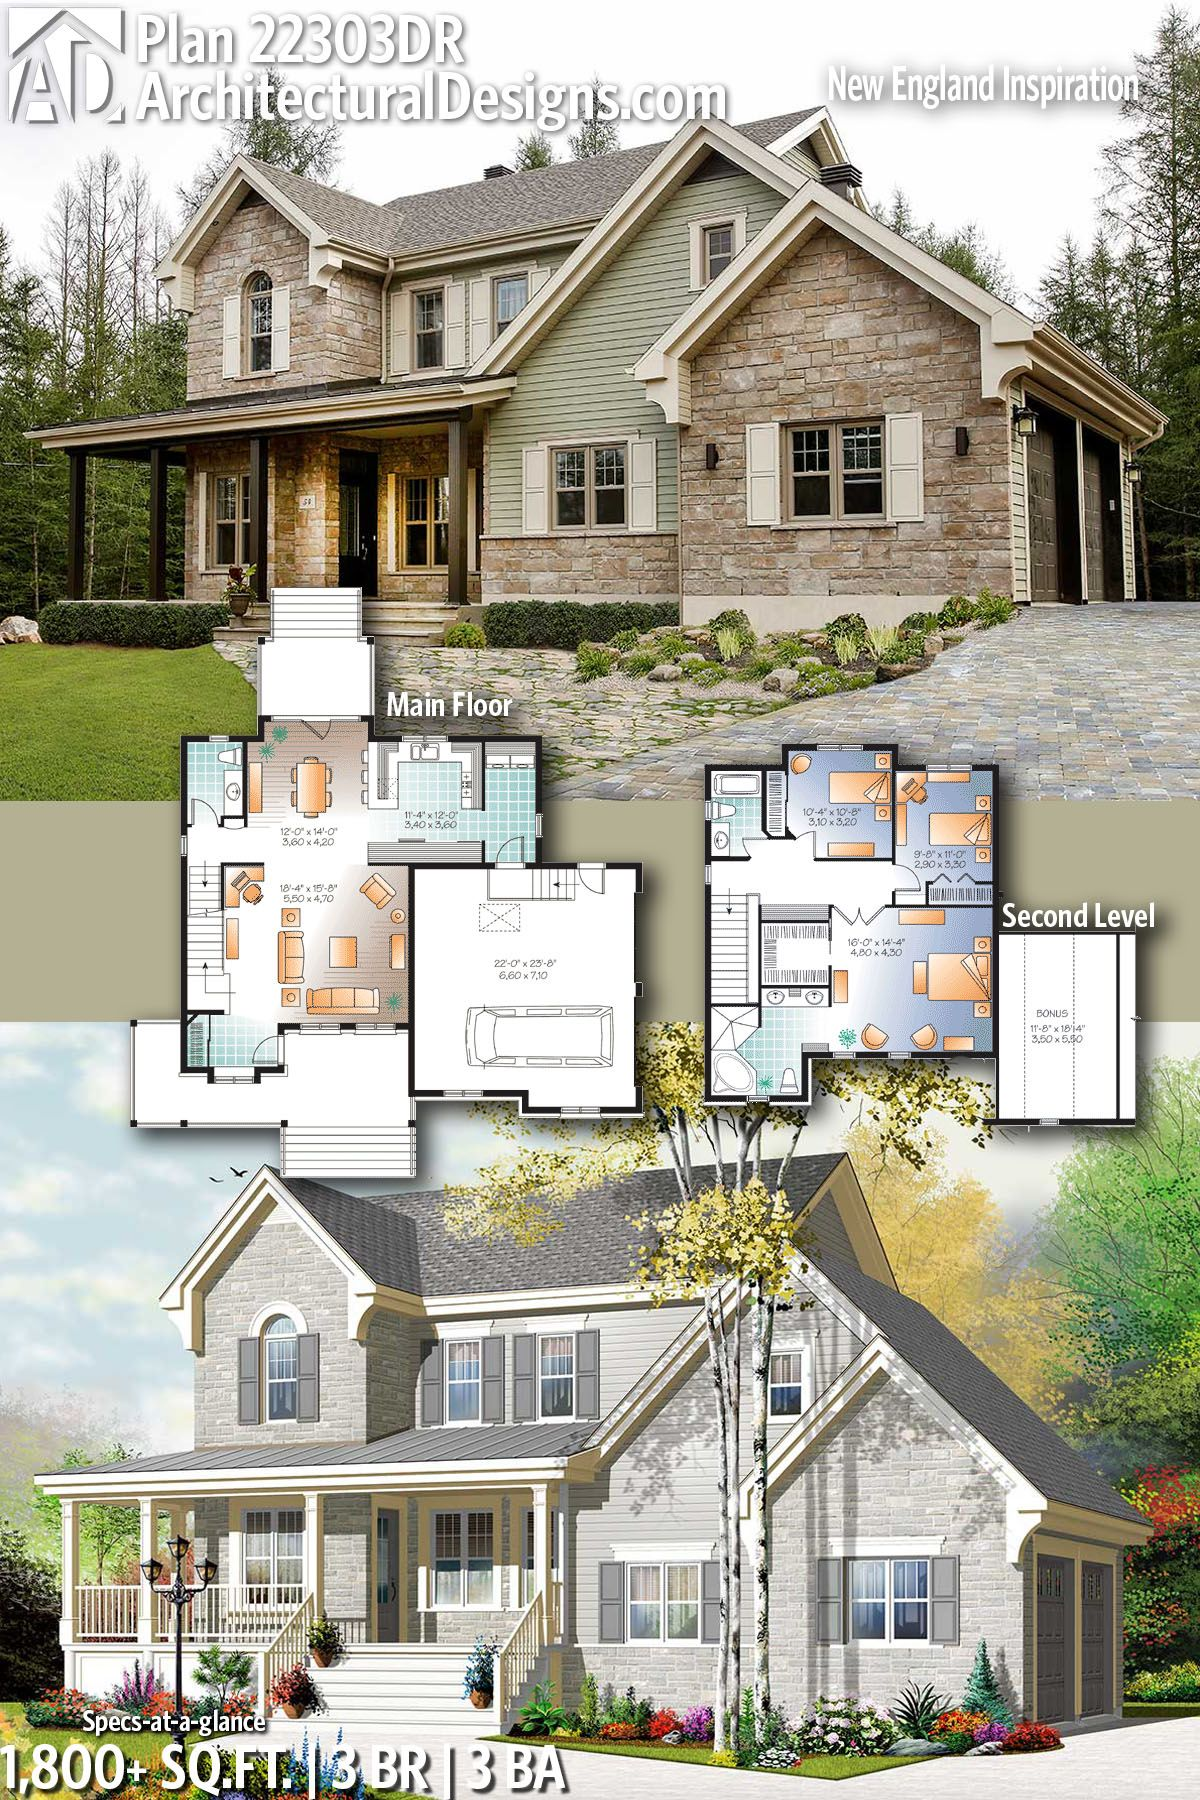 Plan 22303dr New England Inspiration Farmhouse Plans Dream House Plans England Houses